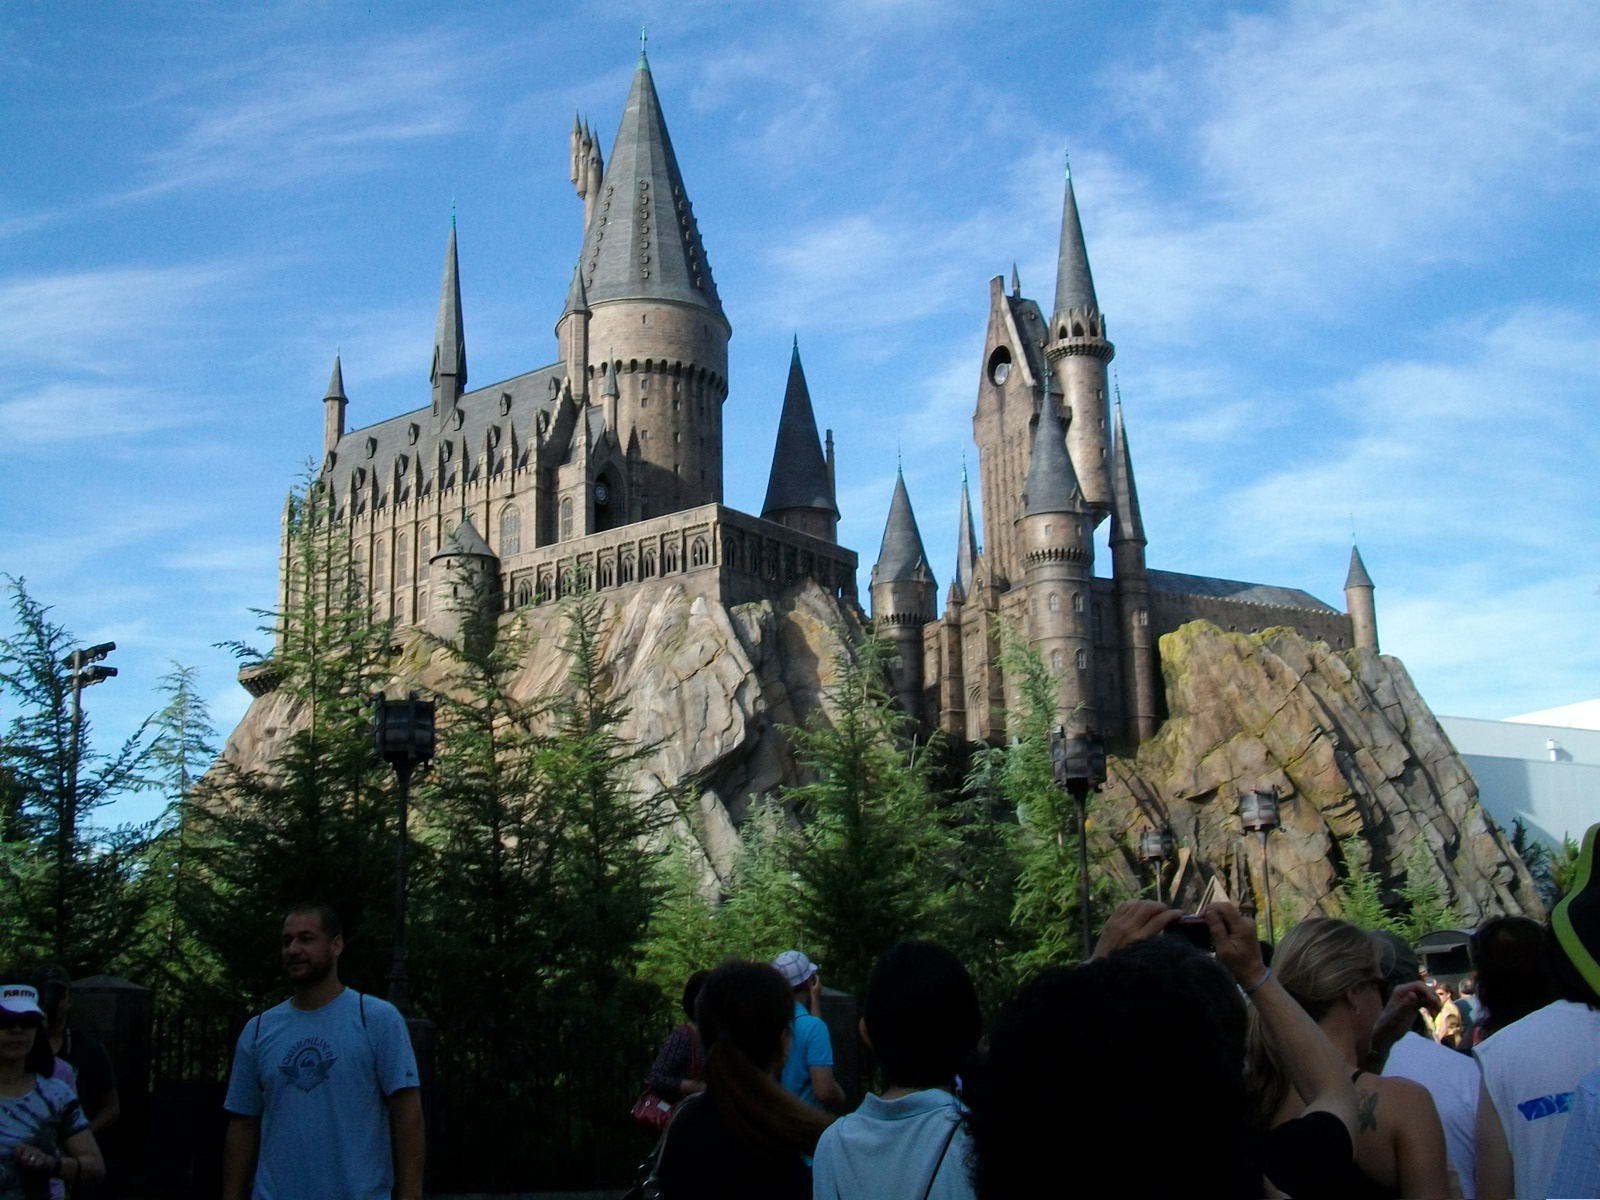 Harry Potter Universal Studios Orlando Photos Video Orlando Vacation Home Rentals Near